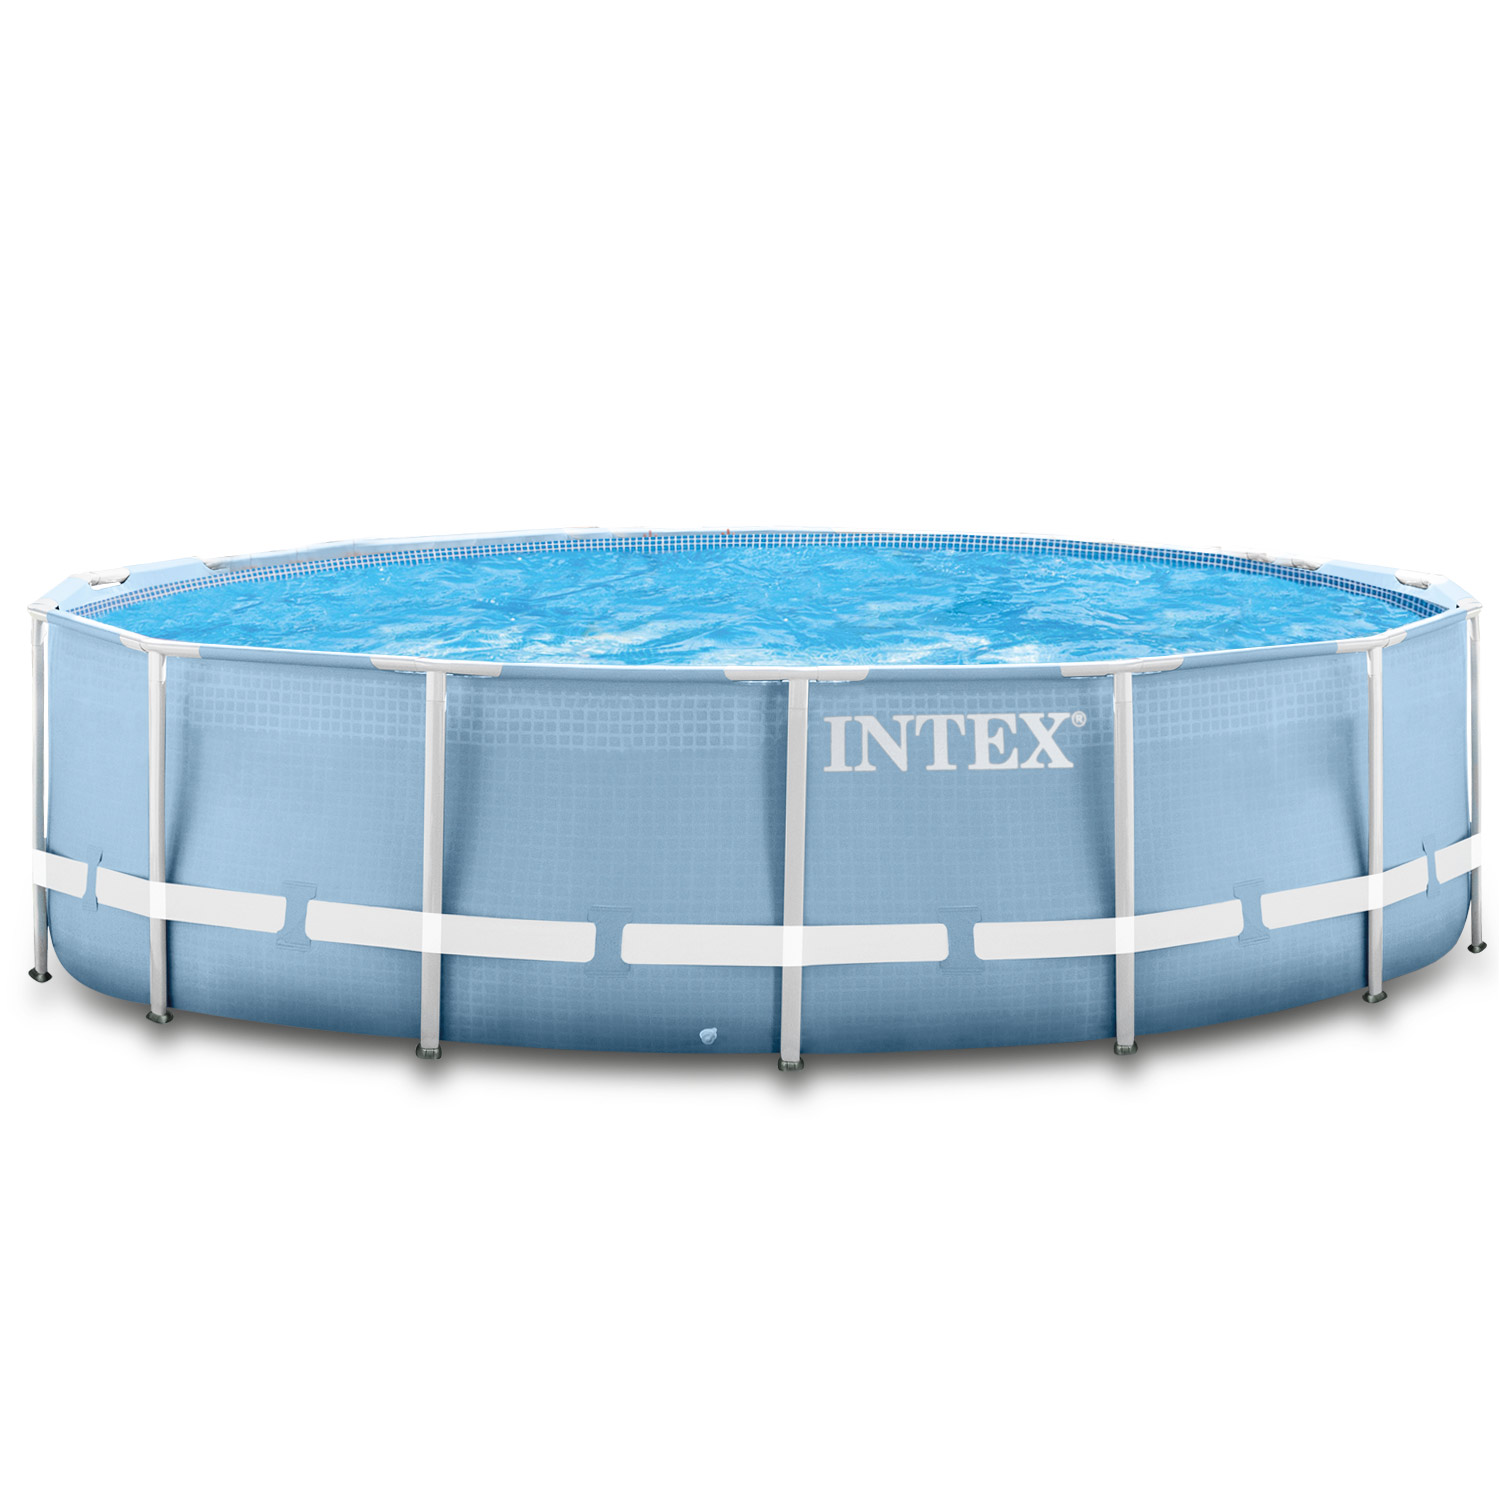 Intex swimming pool frame 366x122 cm mit sandfilter for Swimmingpool angebote